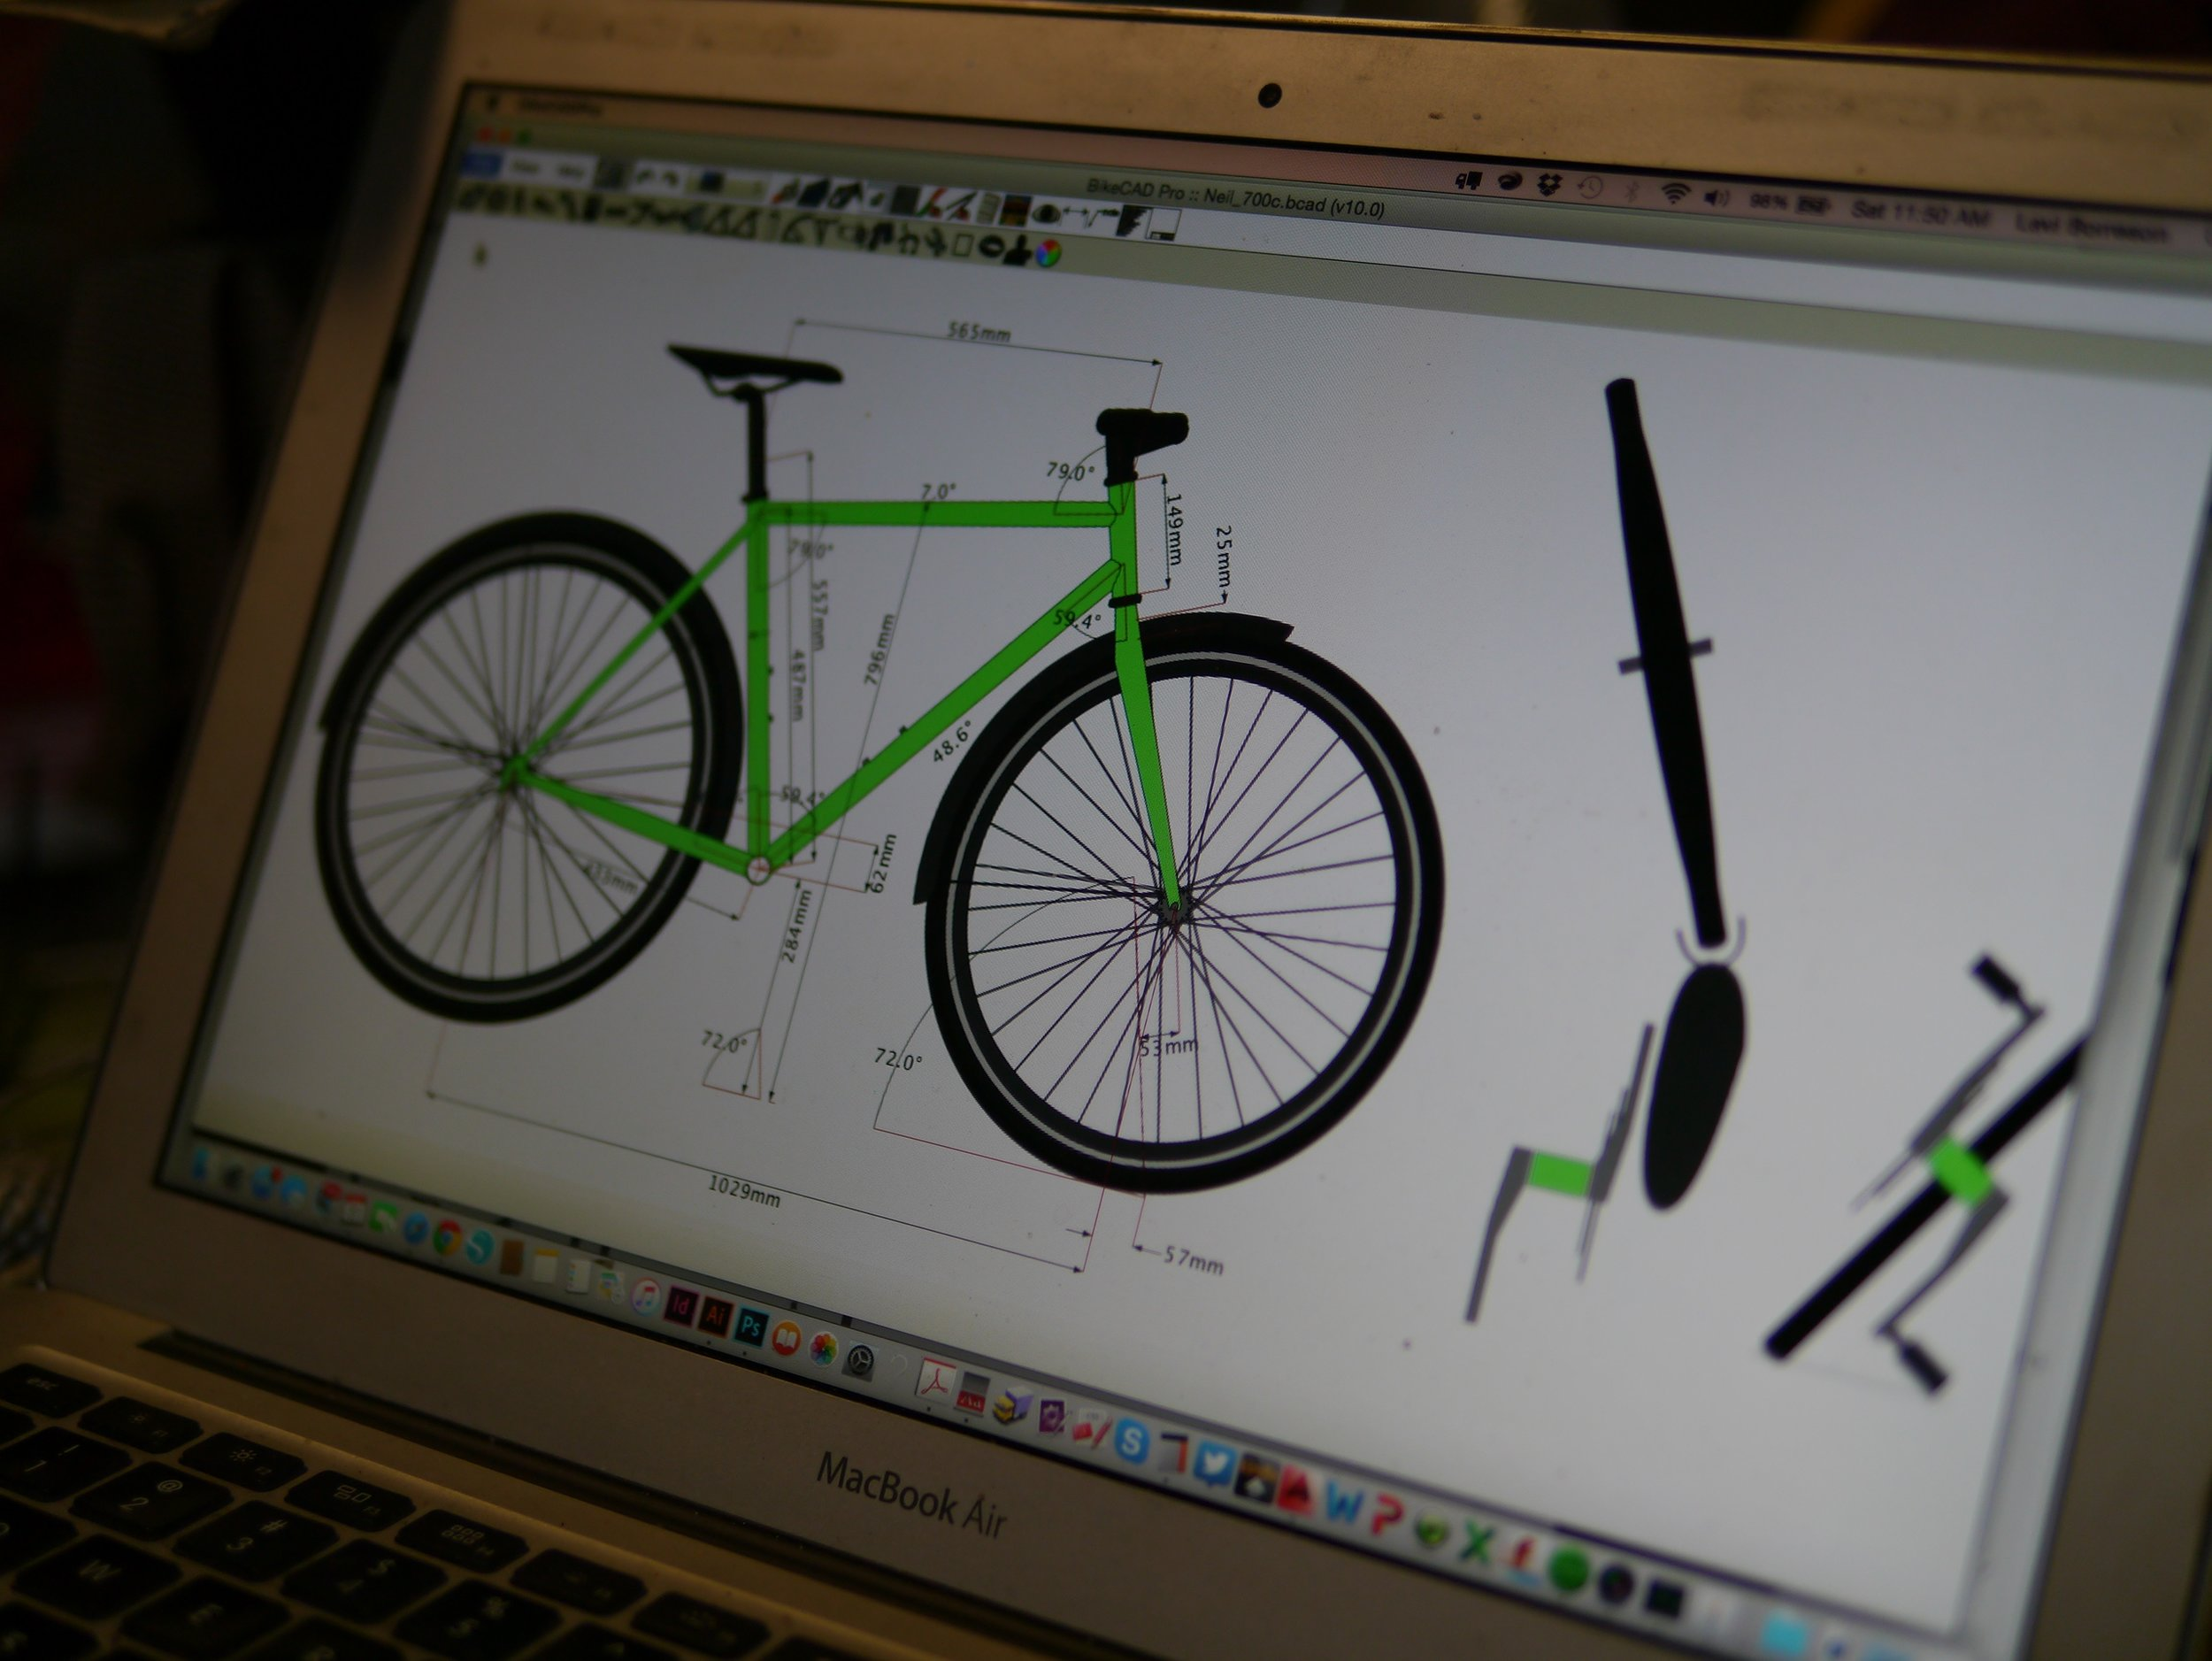 Day 1: We build your dream bike in BikeCAD and determine materials and measurements.Photo and bike built by our student Neil Ballentine